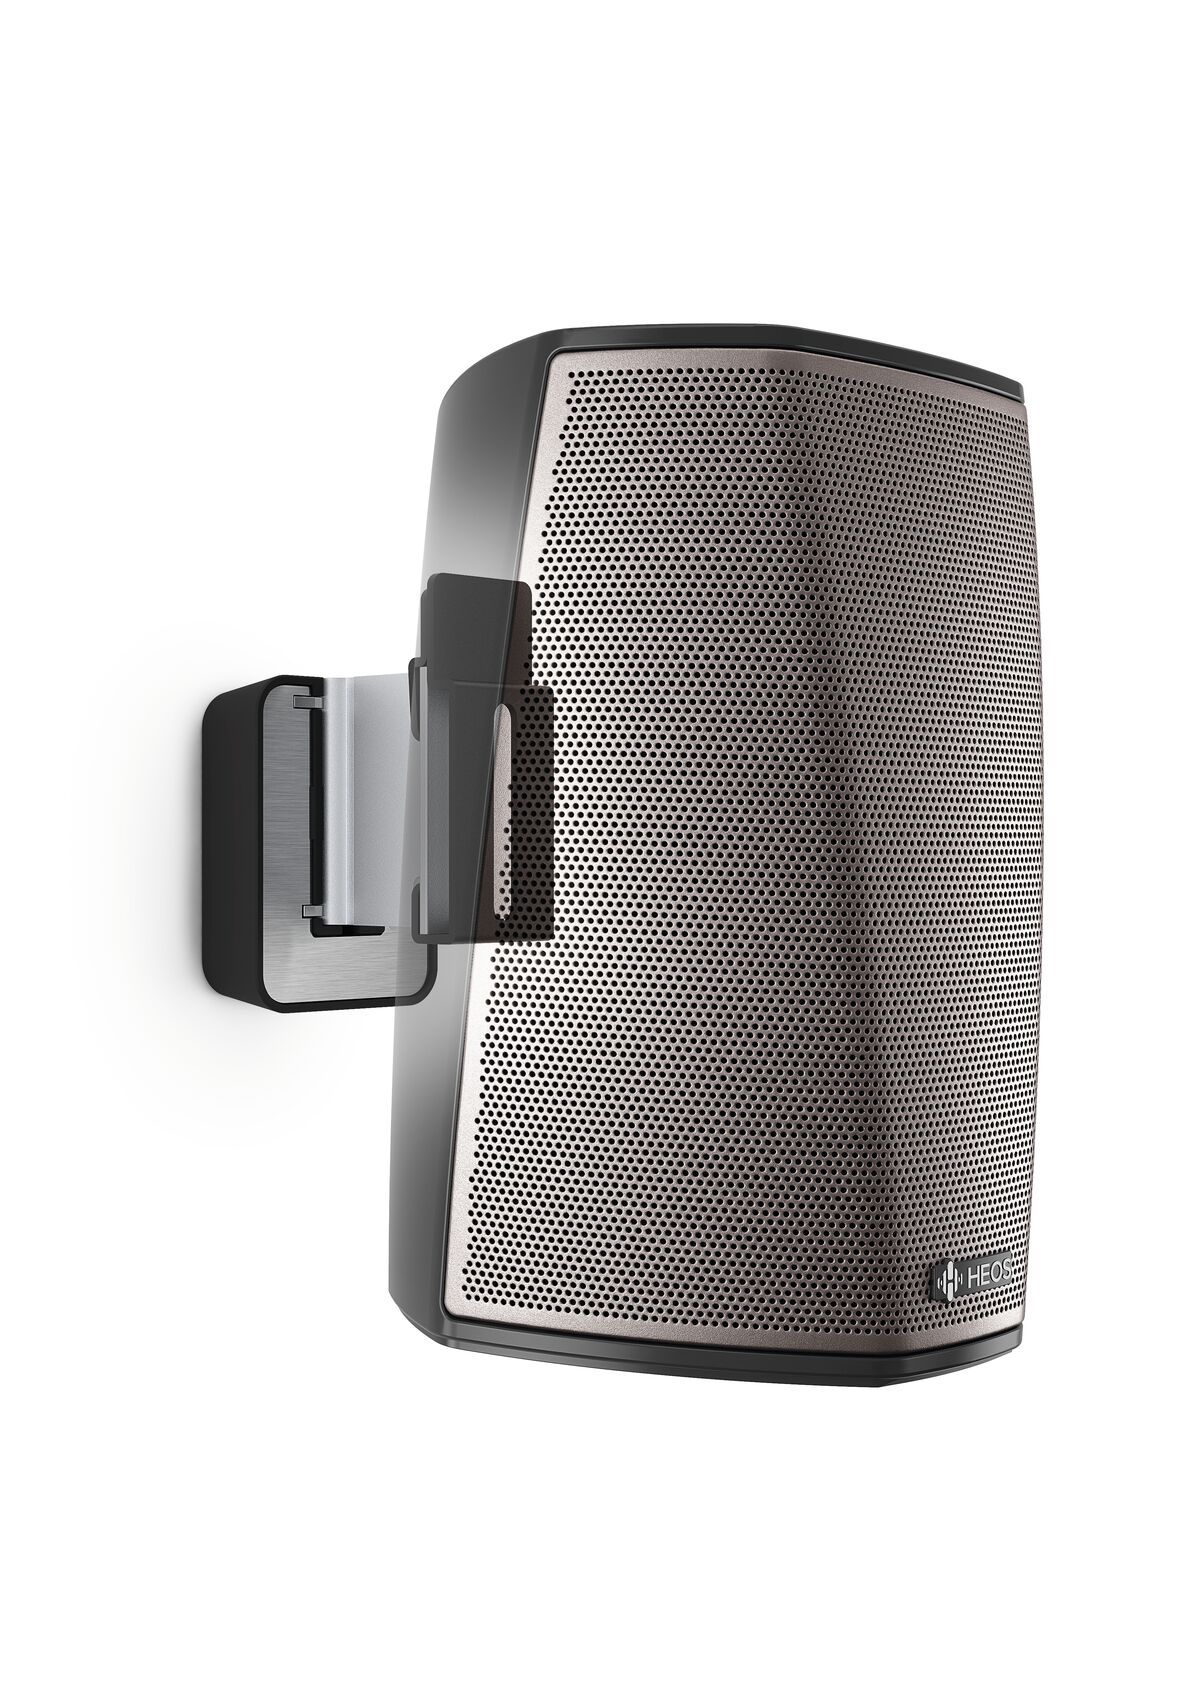 Vogel's SOUND 5201 Support enceinte pour Denon HEOS 1 (noir) - Application